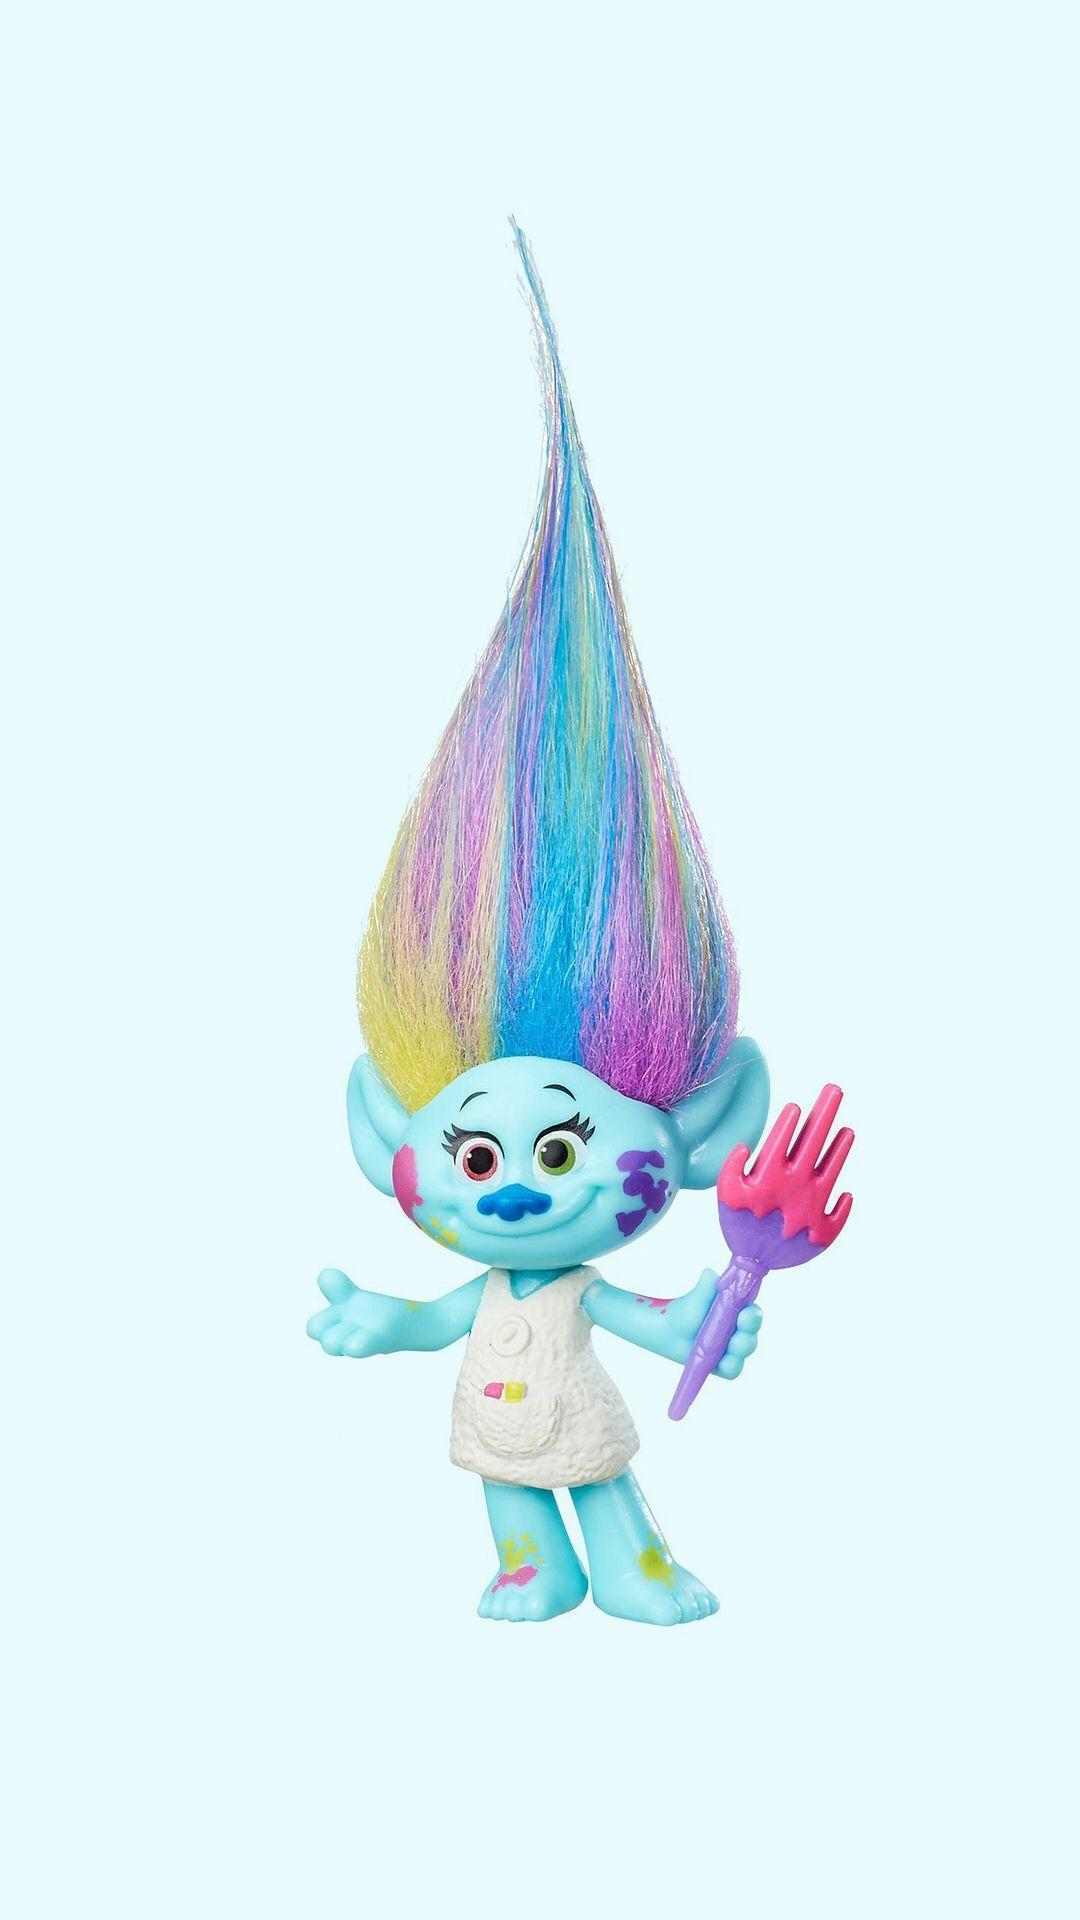 Wallpaper iPhone /cartoons/trolls/cute⚪ | Wallpapers IPhone .